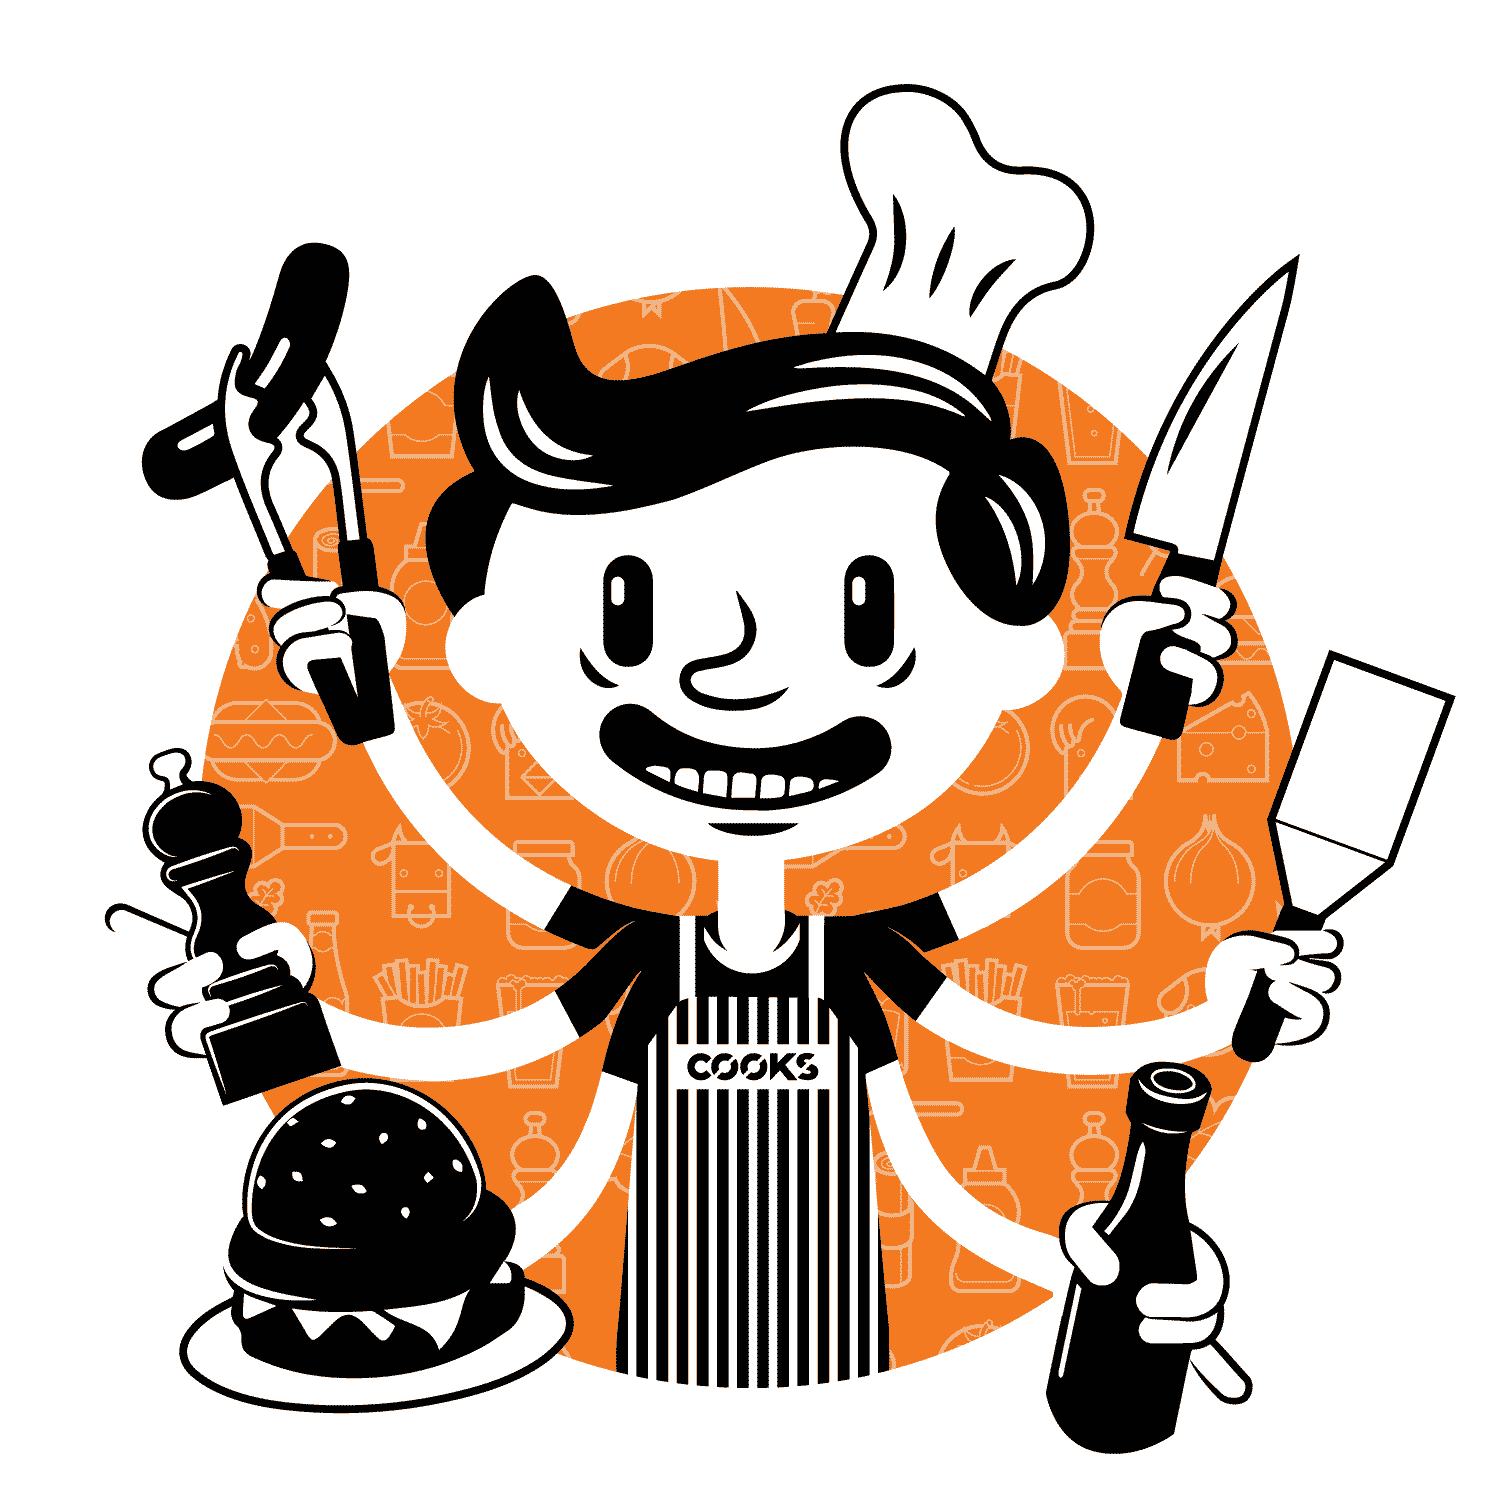 The Cooks dude